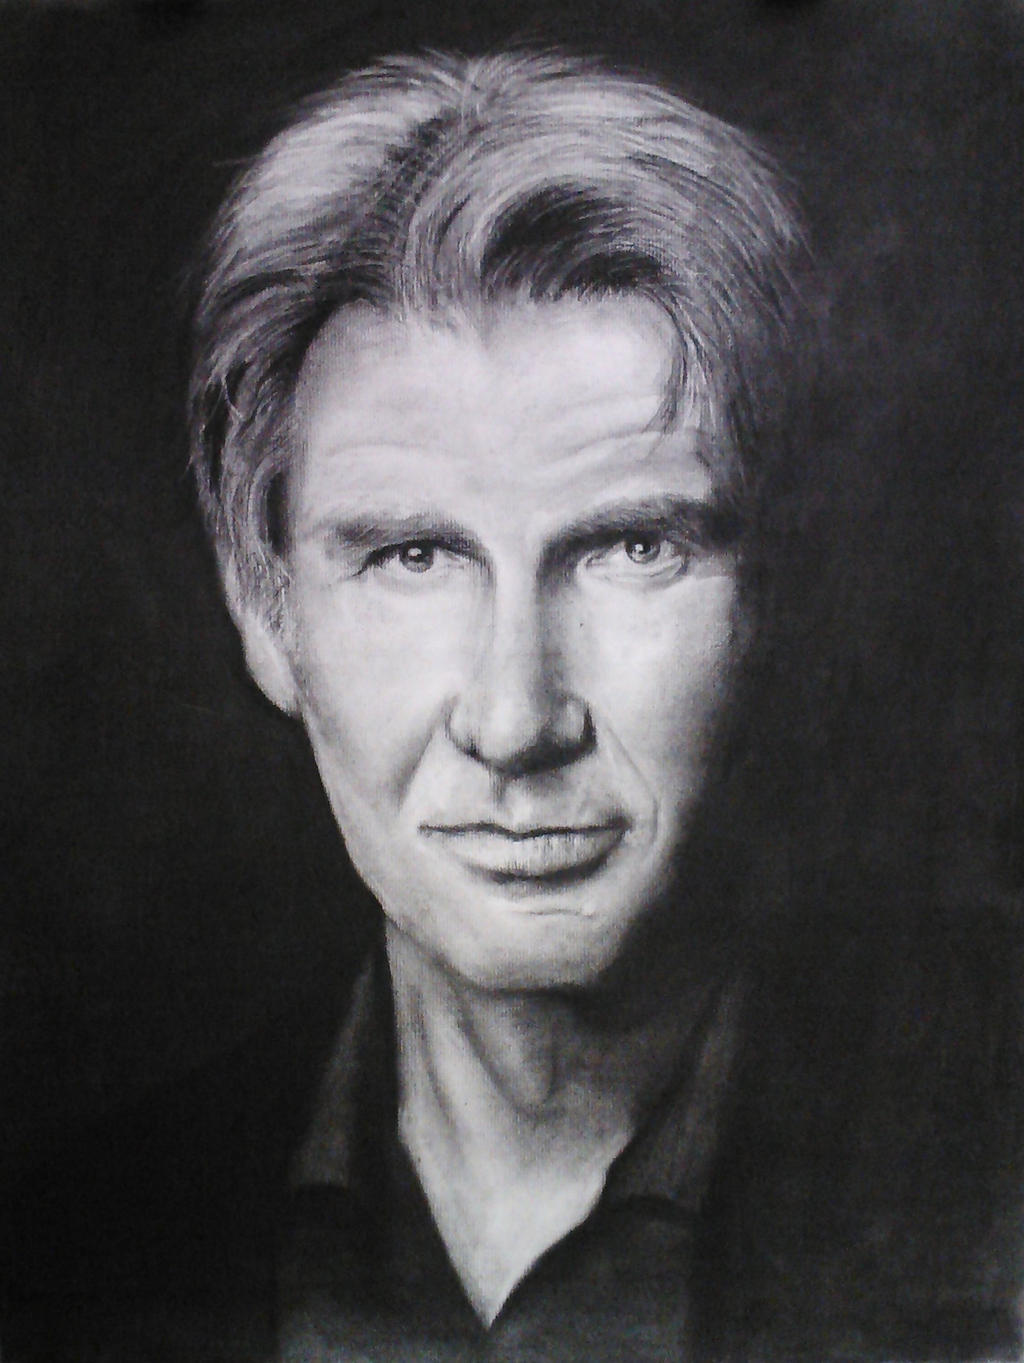 Harrison Ford (analysis of form)